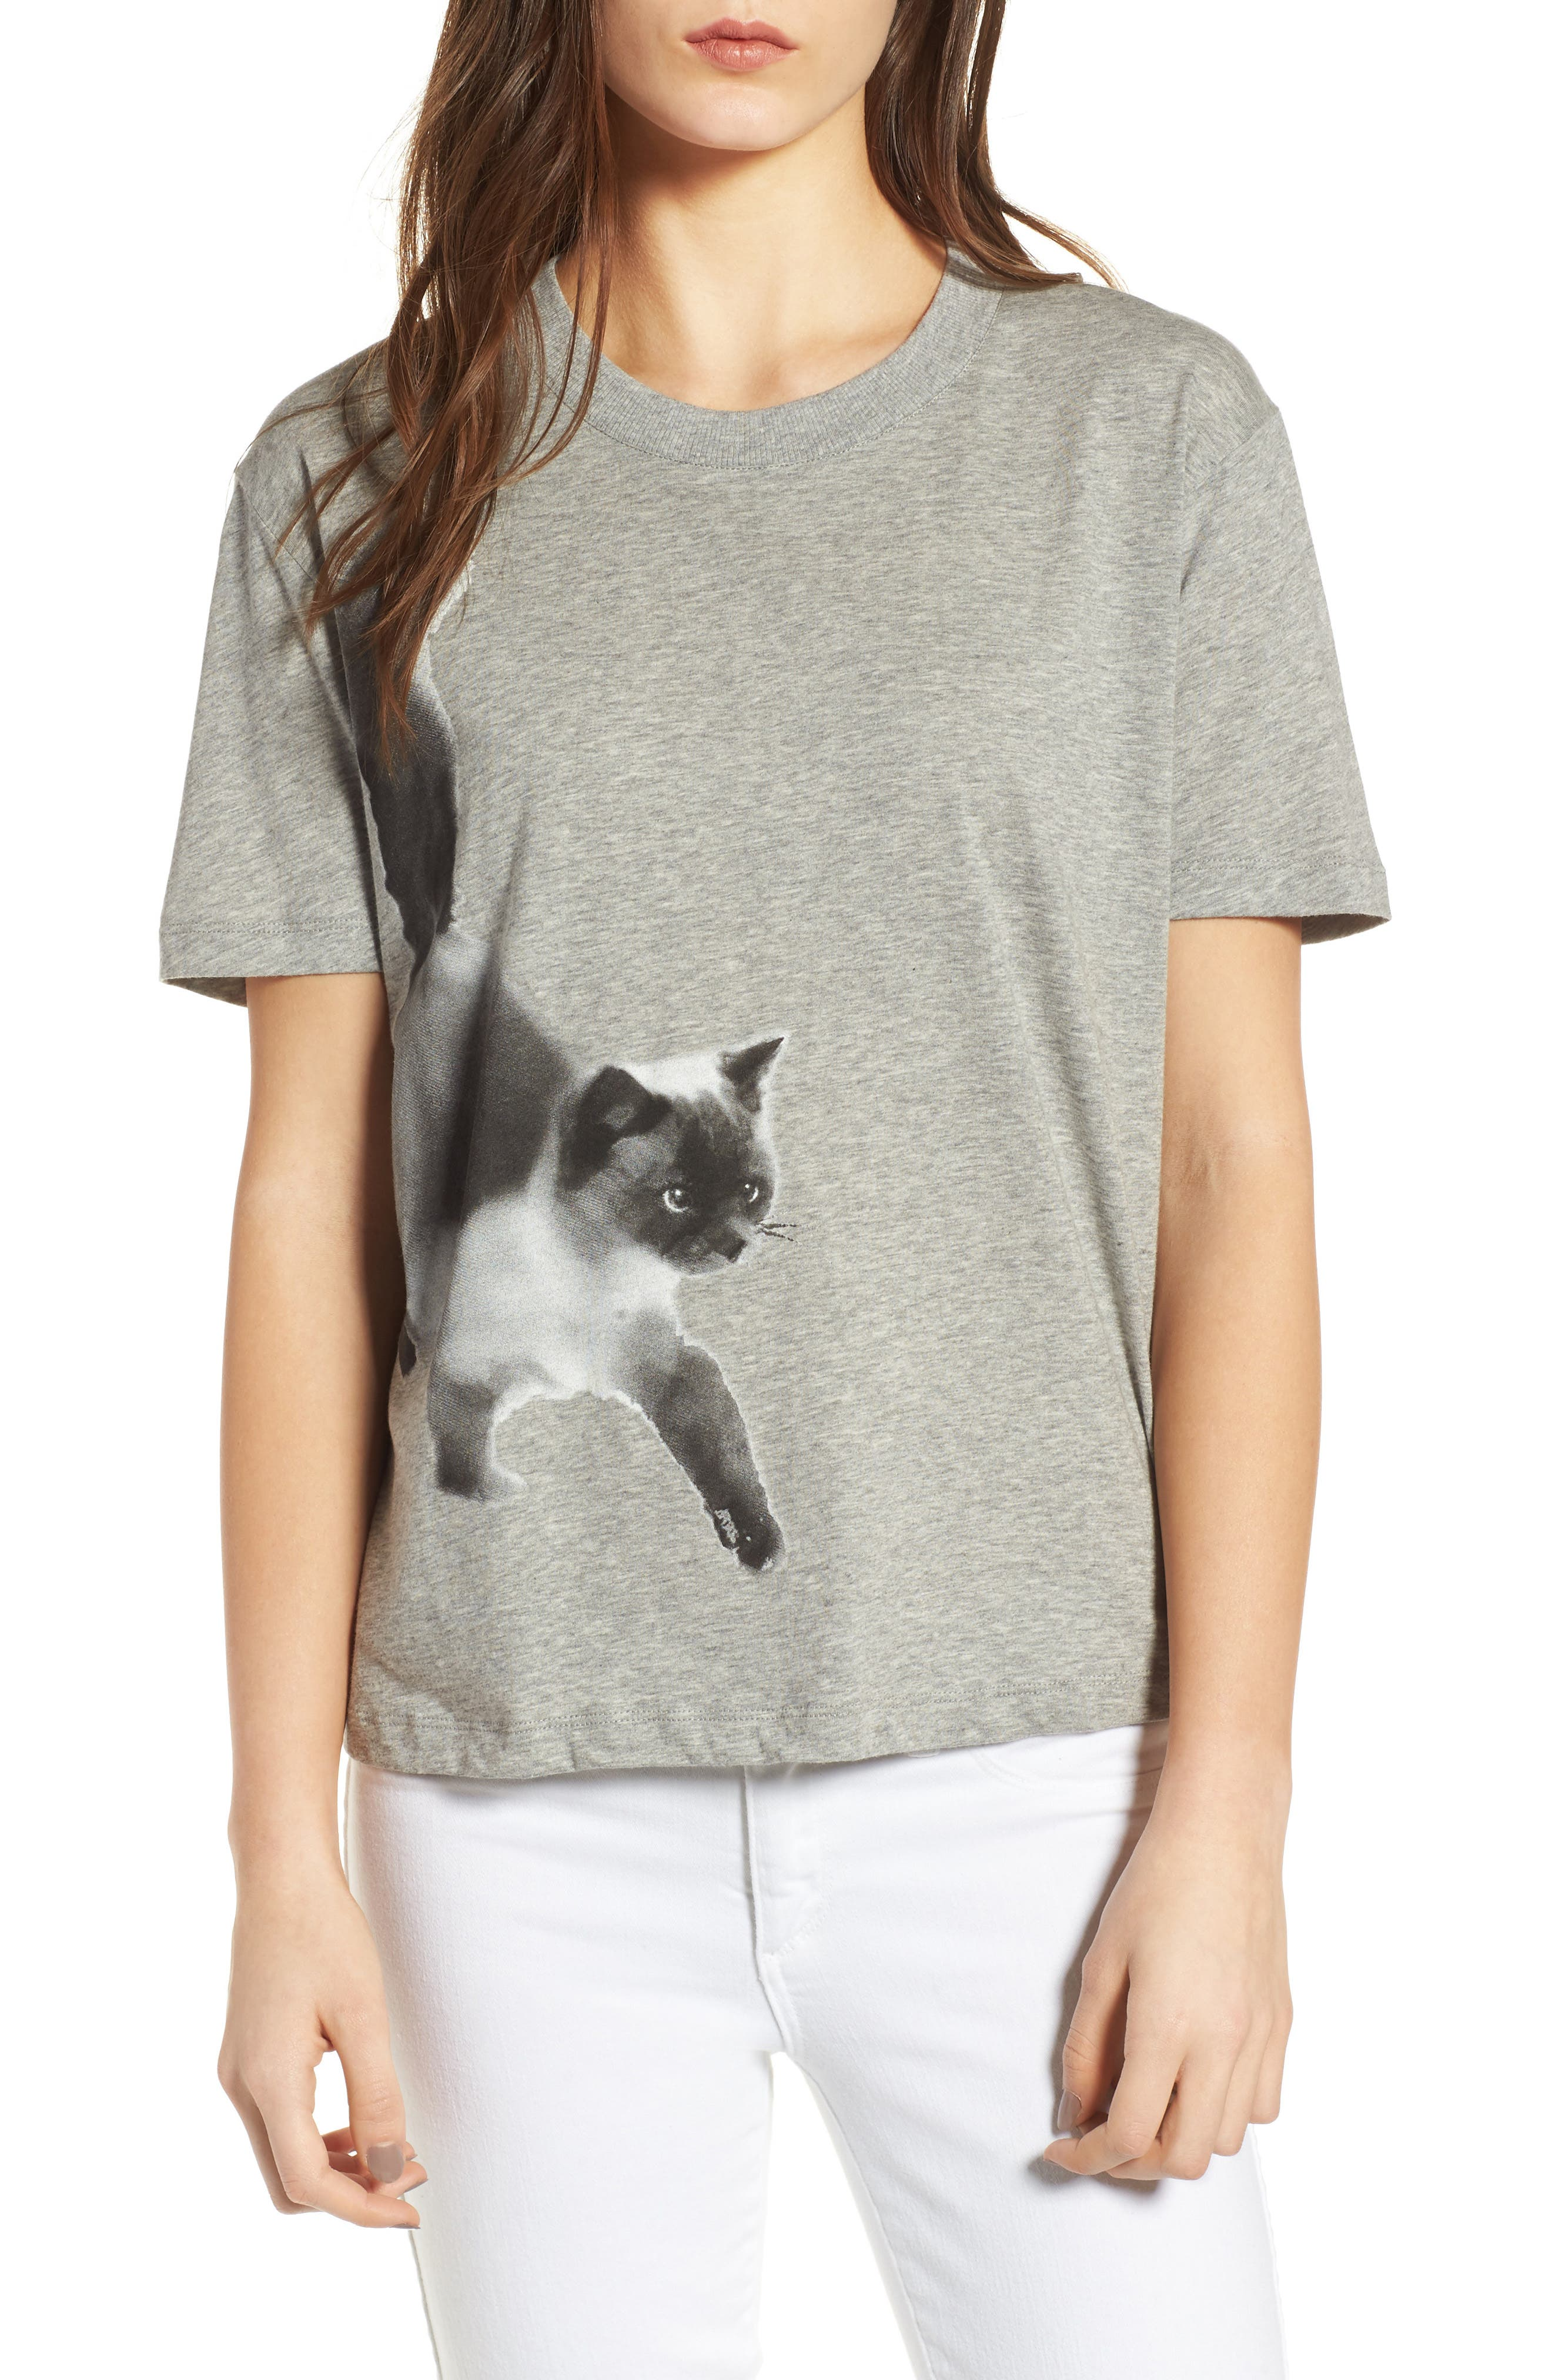 Alternate Image 1 Selected - Paul & Joe Sister Cat Print Graphic Tee